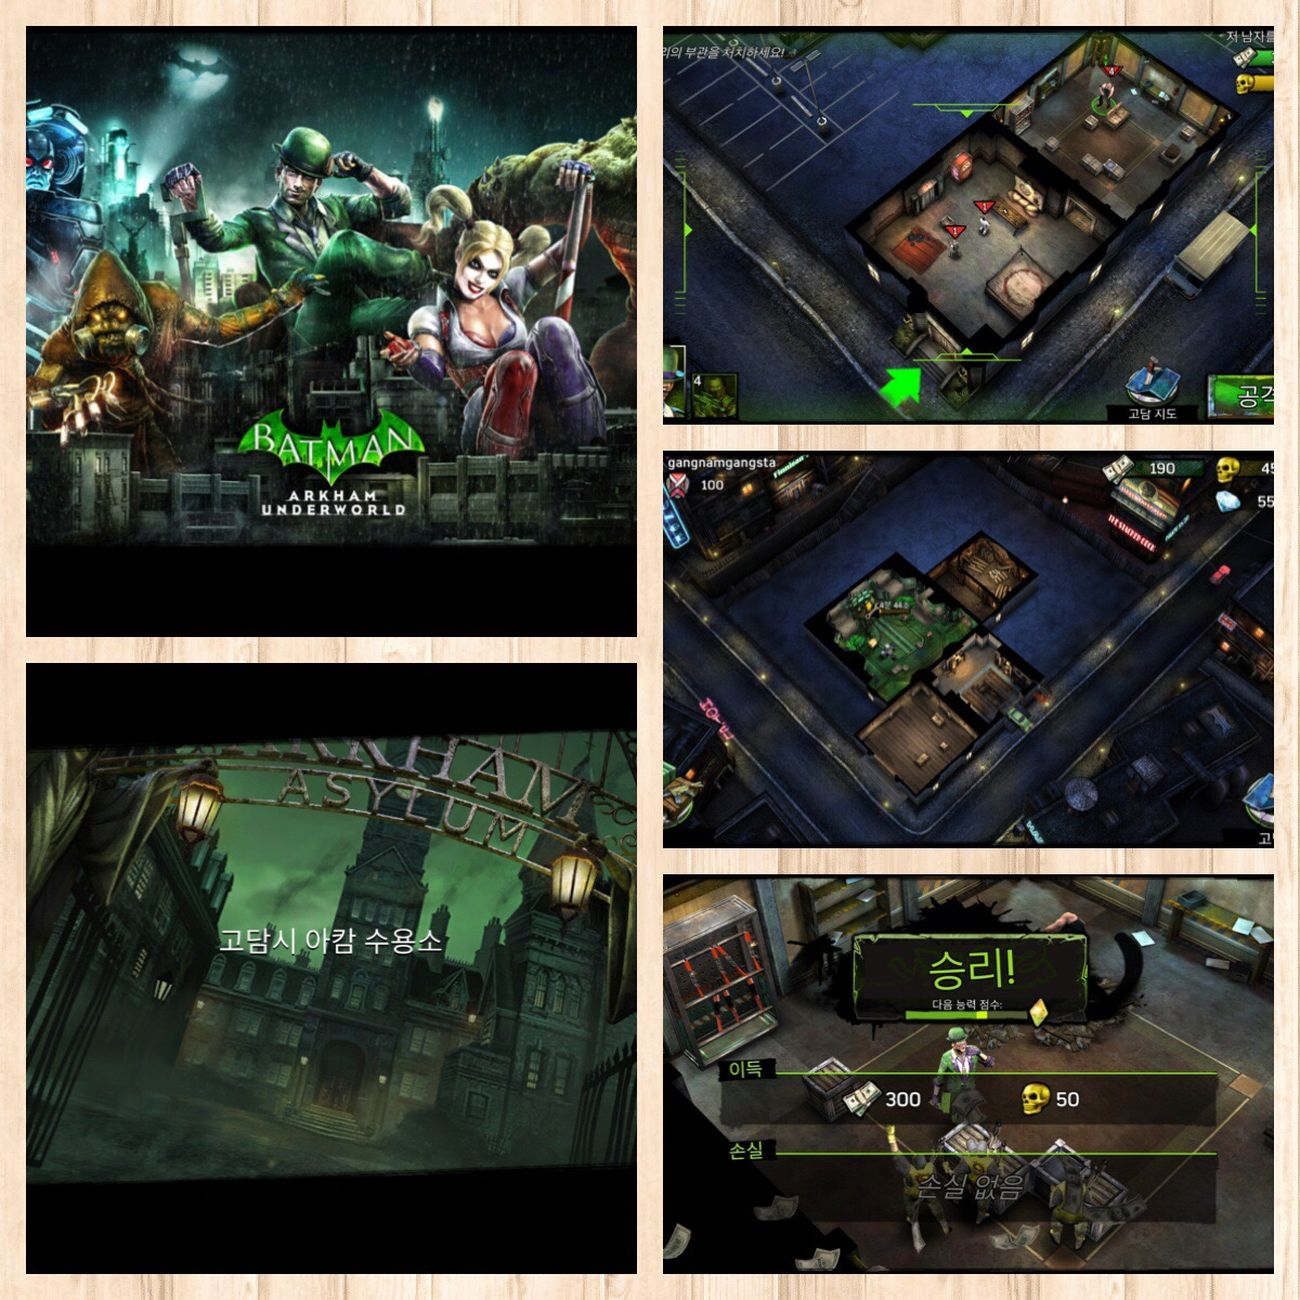 Batman Arkham Underworld MobileGame Apple Iphone Games